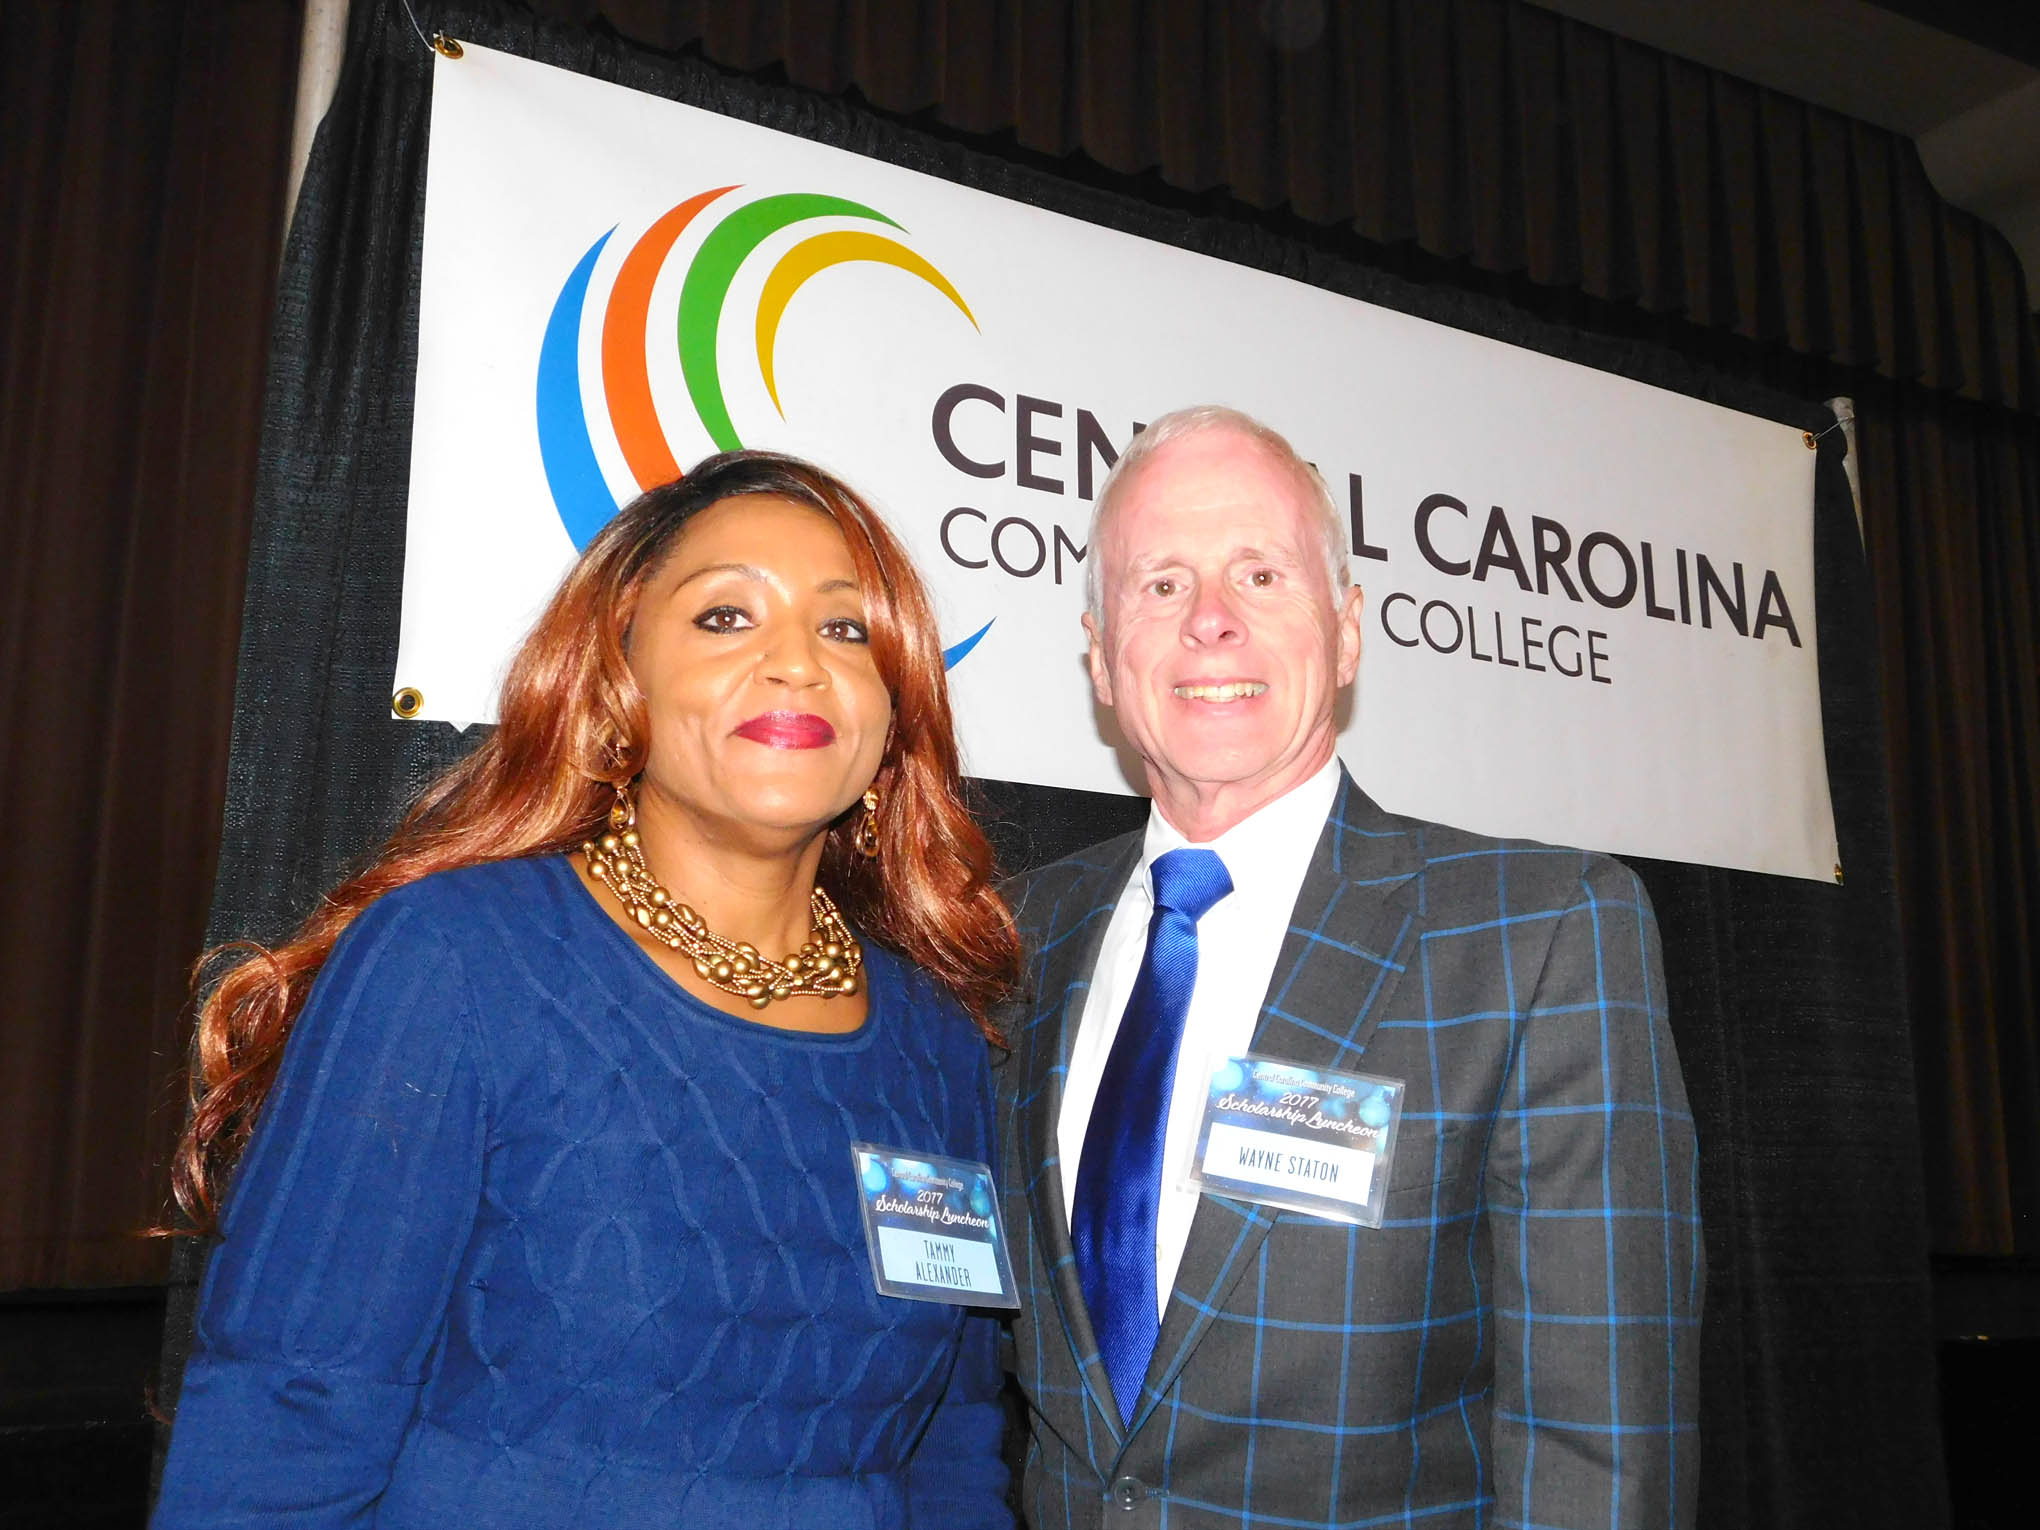 Click to enlarge,  Wayne Staton (right) visits with CCCC scholarship recipient Tammy Alexander during Central Carolina Community College's Scholarship Luncheon on Wednesday, Nov. 15, at the Dennis A. Wicker Civic Center. Staton was in attendance to represent the Allyn Moore Staton Memorial Scholarships and the William W. and Ellen B. Staton Paralegal Scholarships.